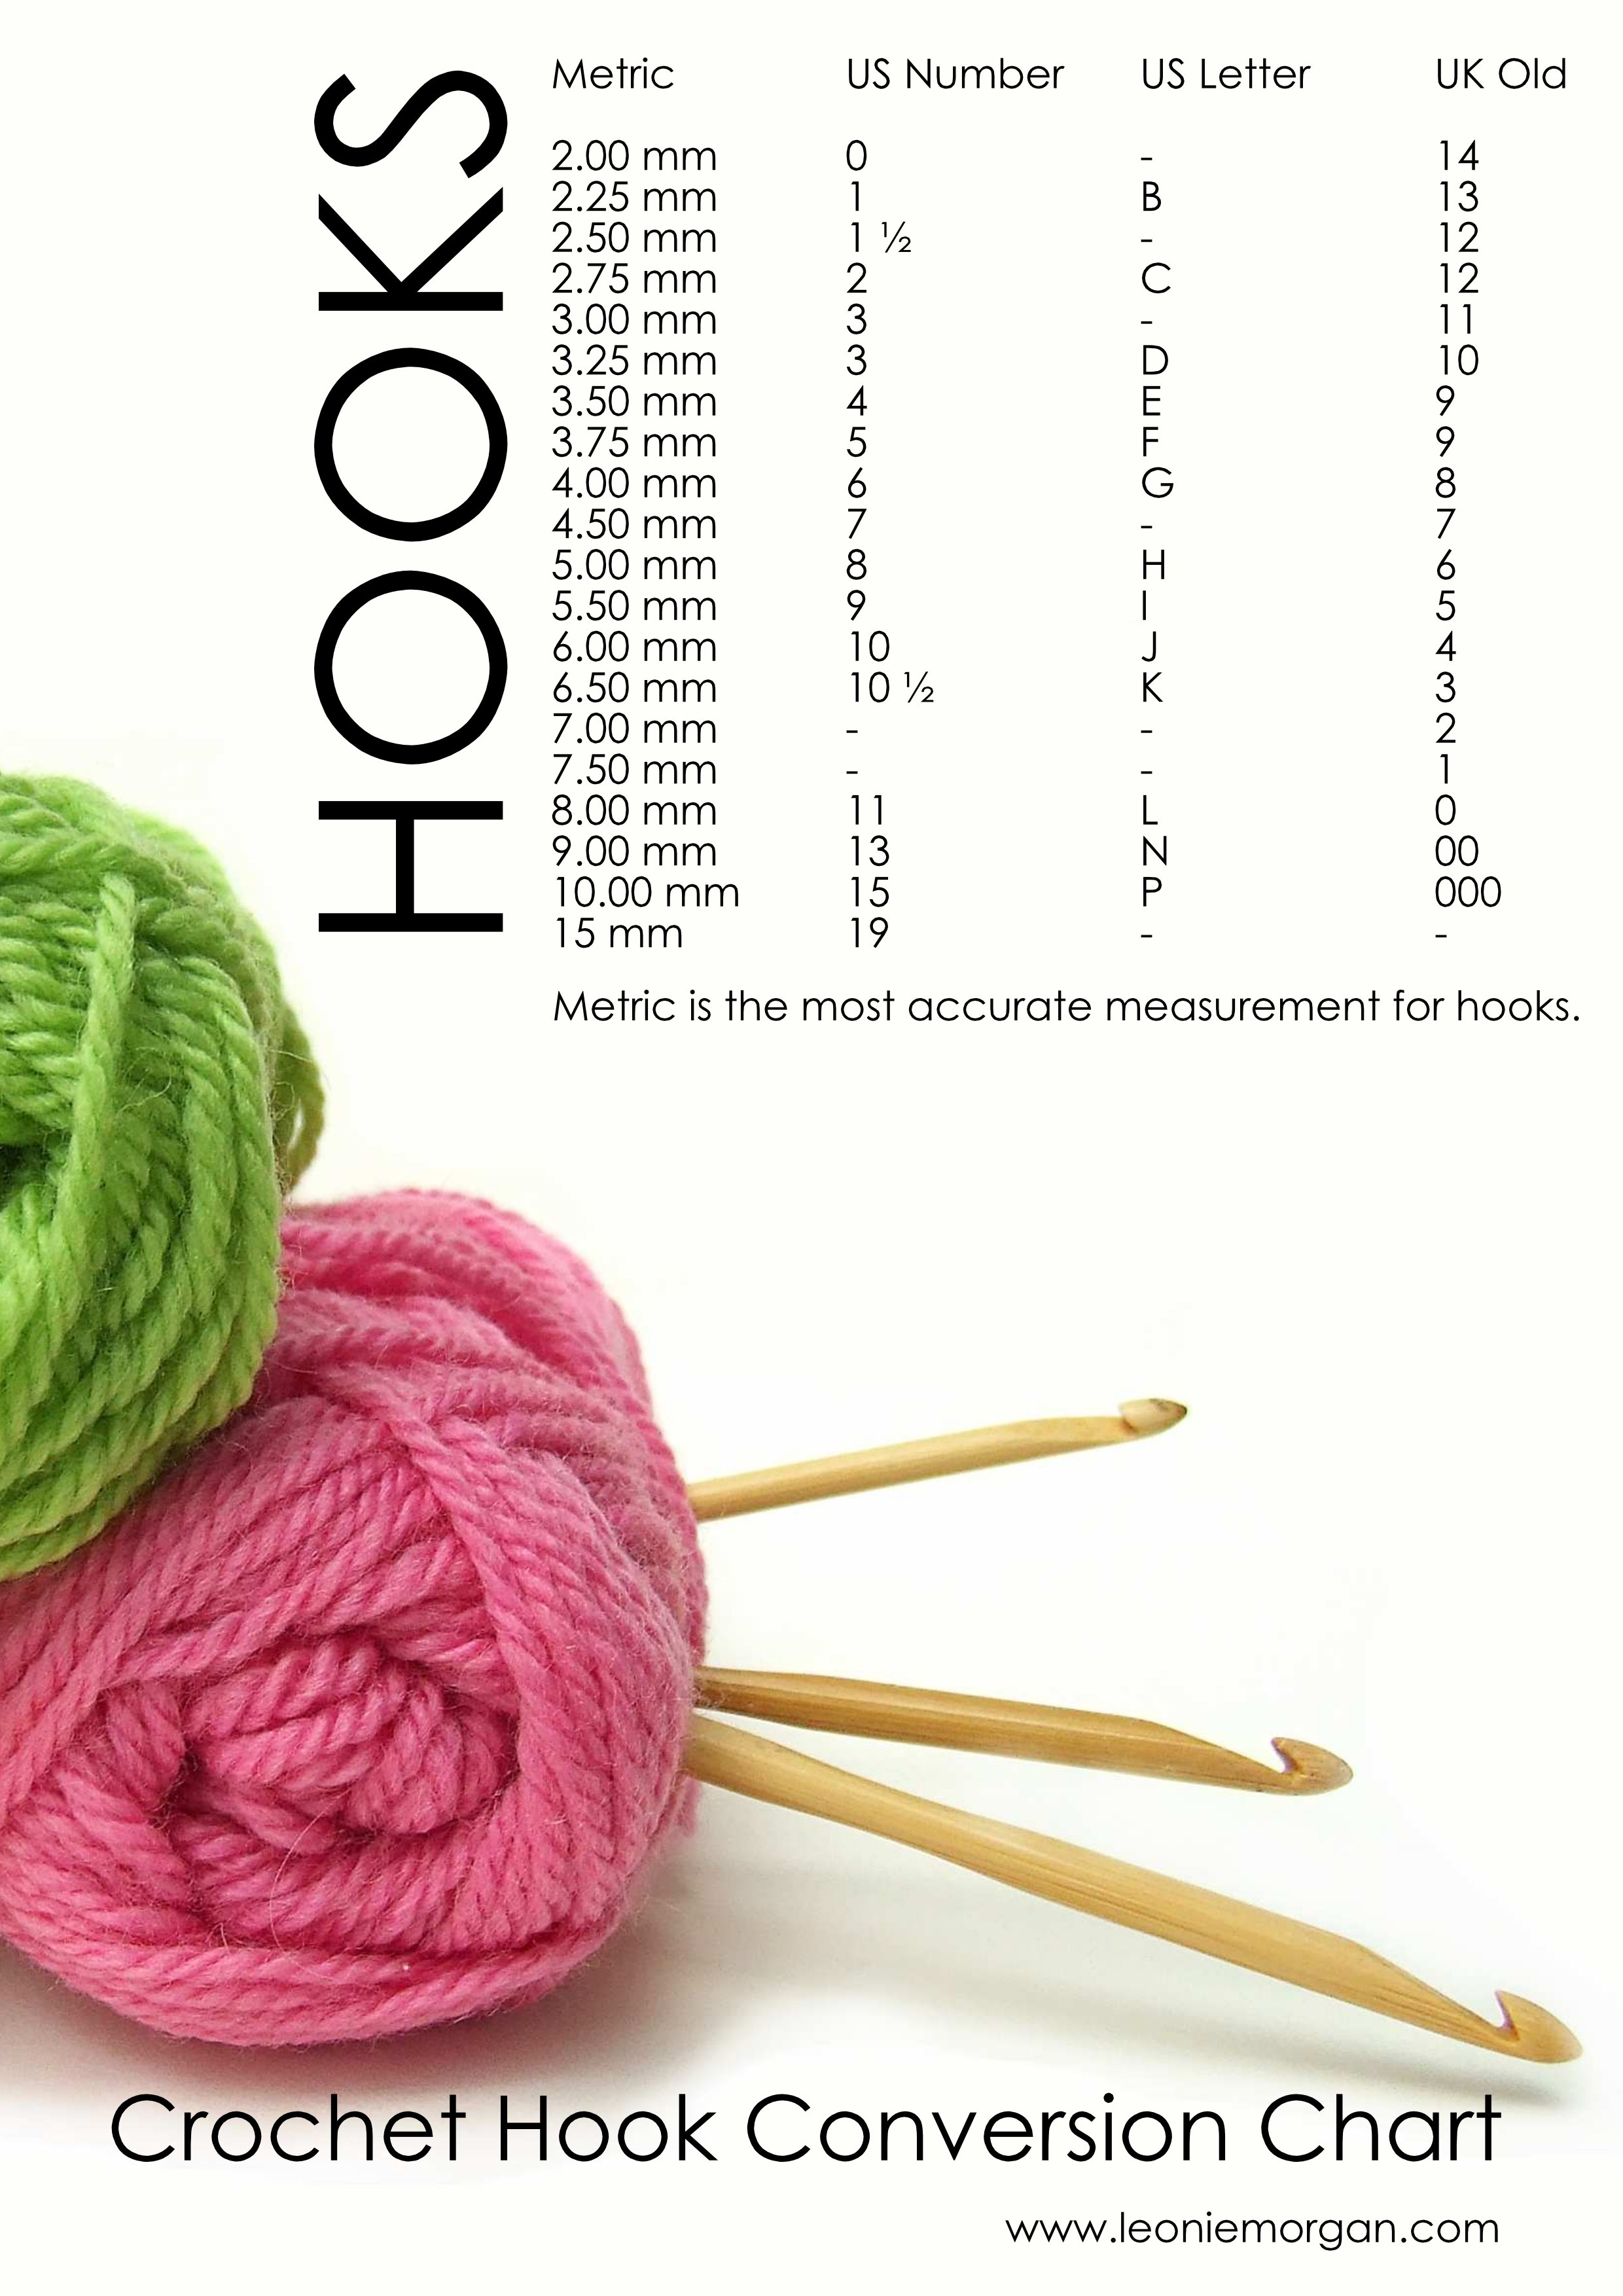 Crochet Hook Conversion Chart - Metric, Us Letter And Number And Uk Old  Sizes